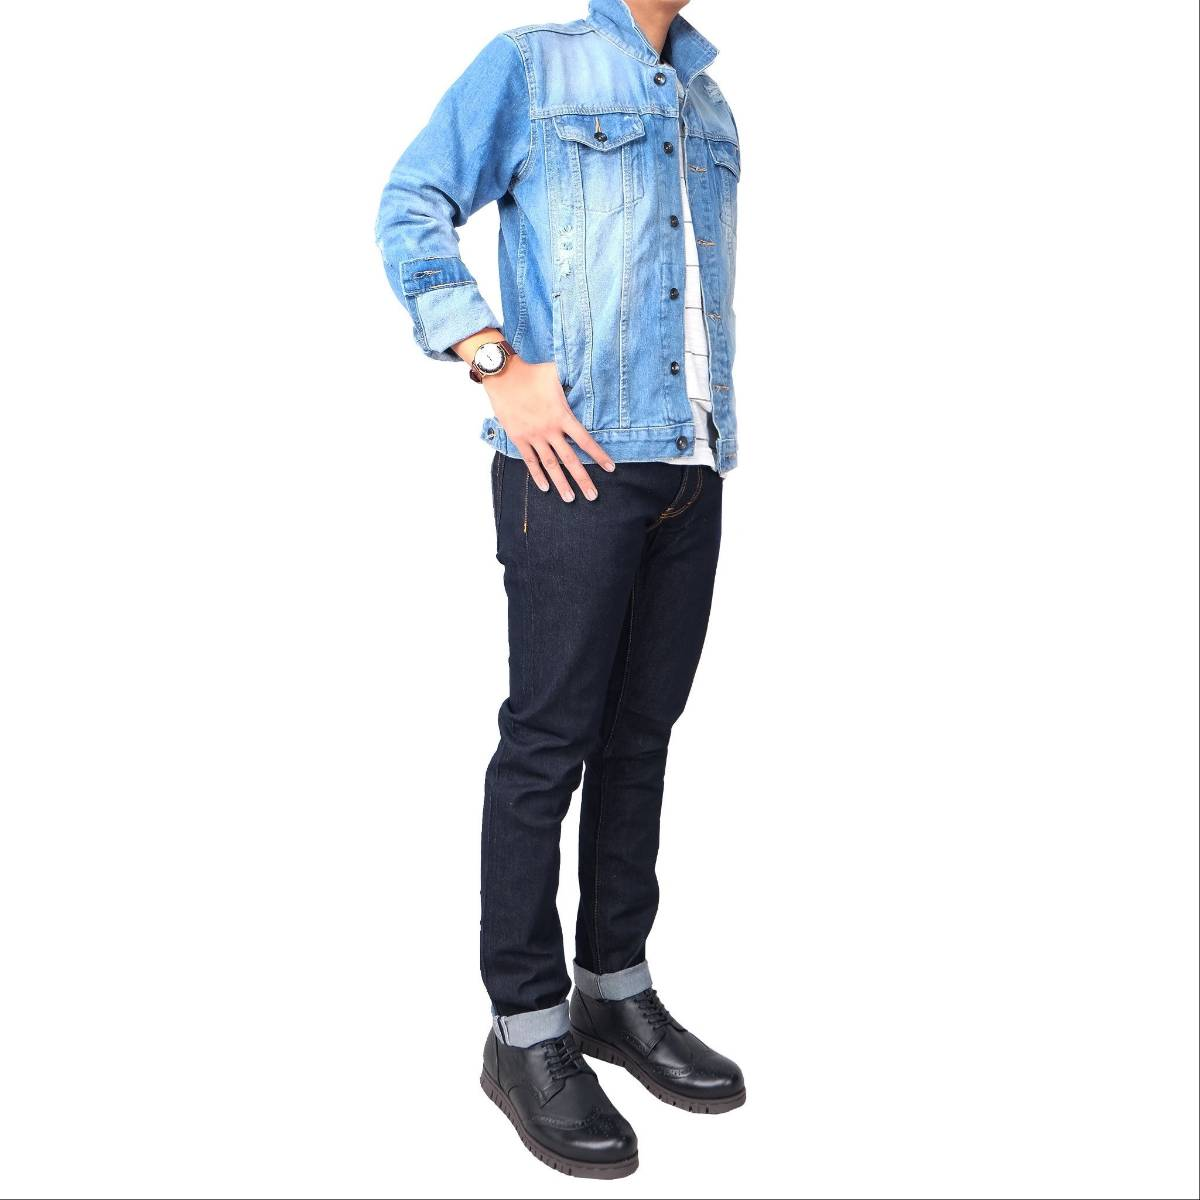 Celana Panjang Jeans /street Wanderers Dry Stretch